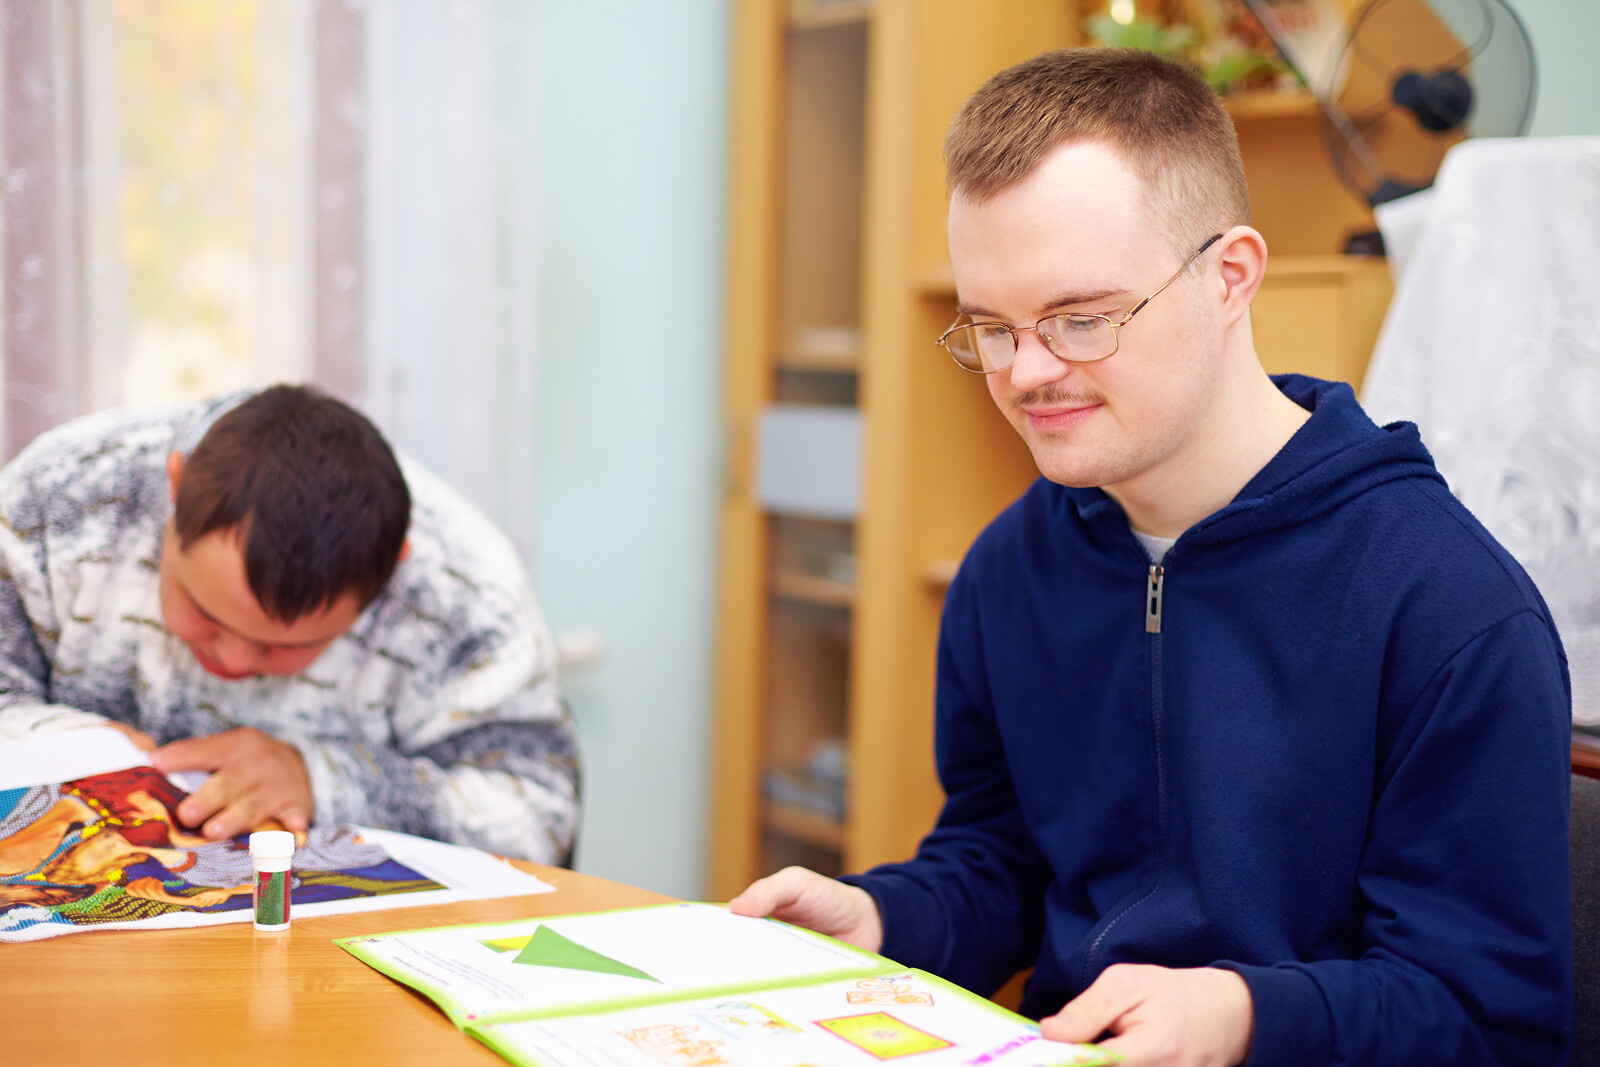 5 Things to Look for in a Group Home for Adults with Developmental Disabilities